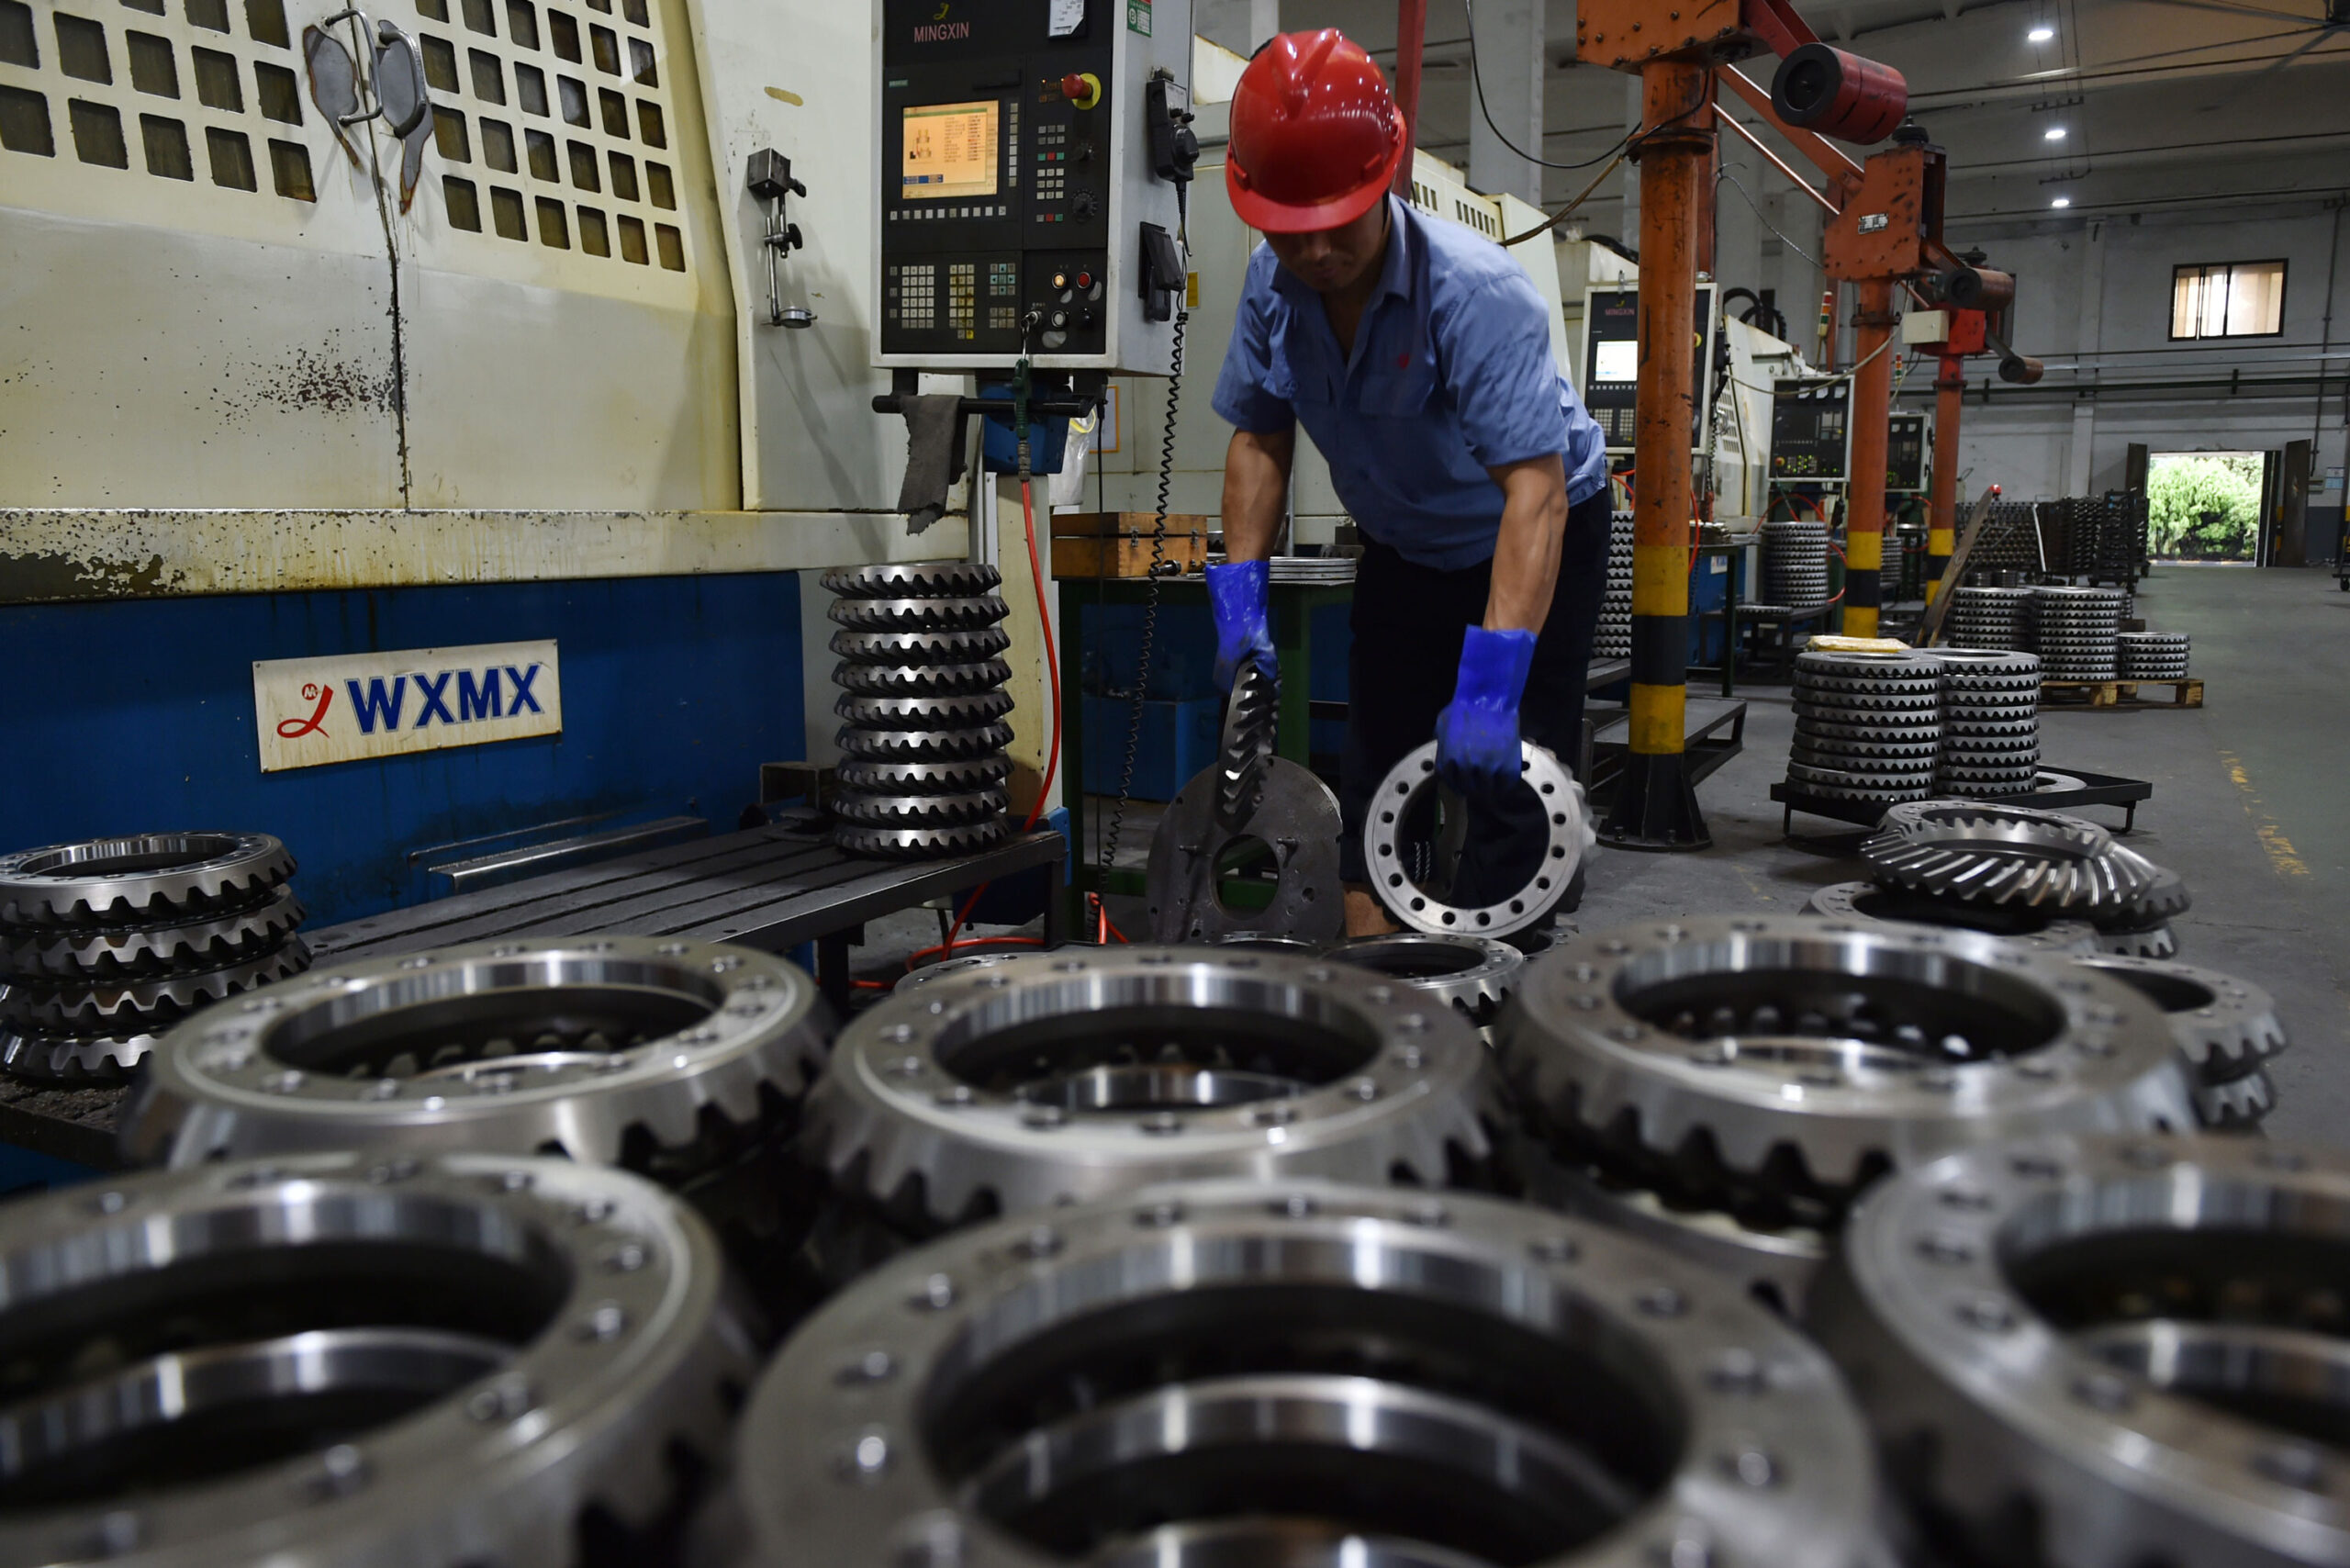 <i>Feature China/Barcroft Media/Getty Images</i><br/>The cost of goods leaving China's factories is surging by the highest rate on record. A worker is shown here in a factory of automotive parts in Taizhou in east China's Jiangsu province Wednesday